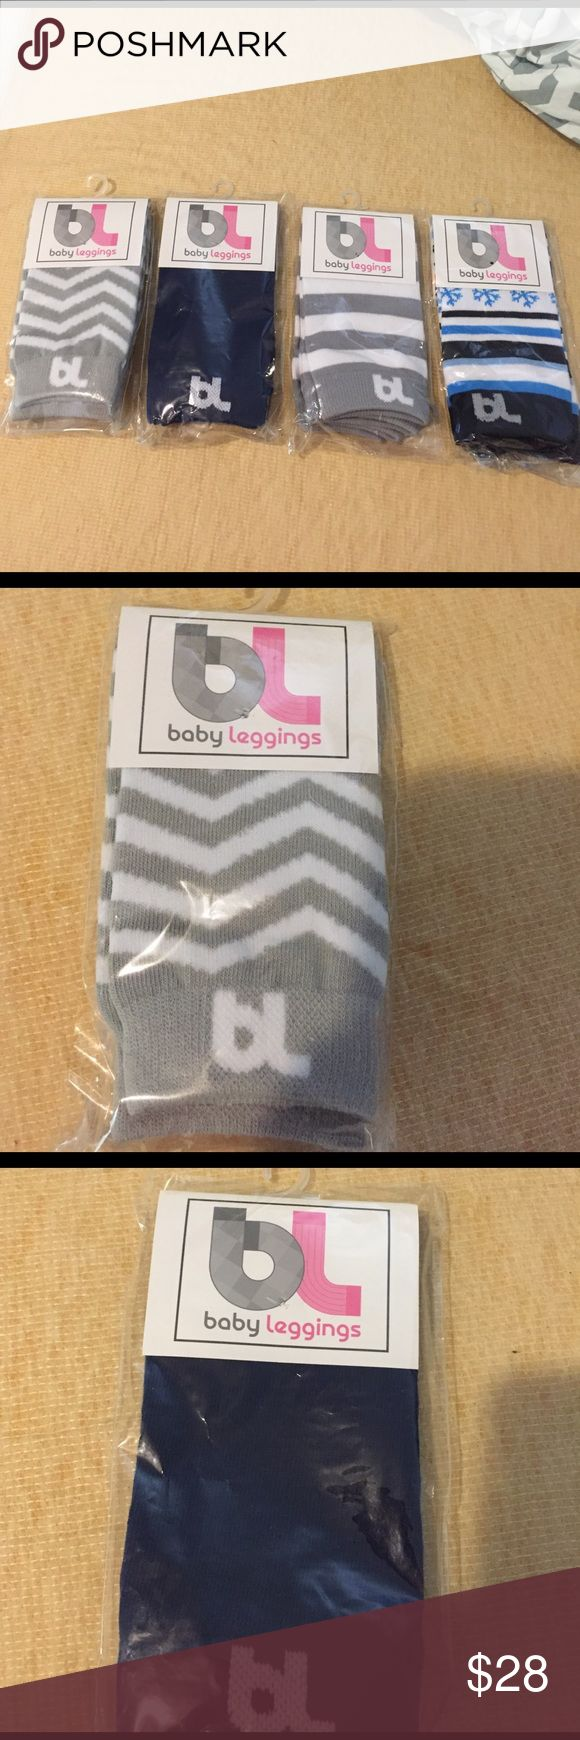 NWOT BabyLegs baby leggings(tall socks). BabyLegs baby leggings, which are just tall socks. Bought from babylegs.com for $12.00 each. All are in their original packaging and NEVER worn! Selling $10 each or will do $35 for all. See pics for colors and details :) BabyLegs Accessories Socks & Tights